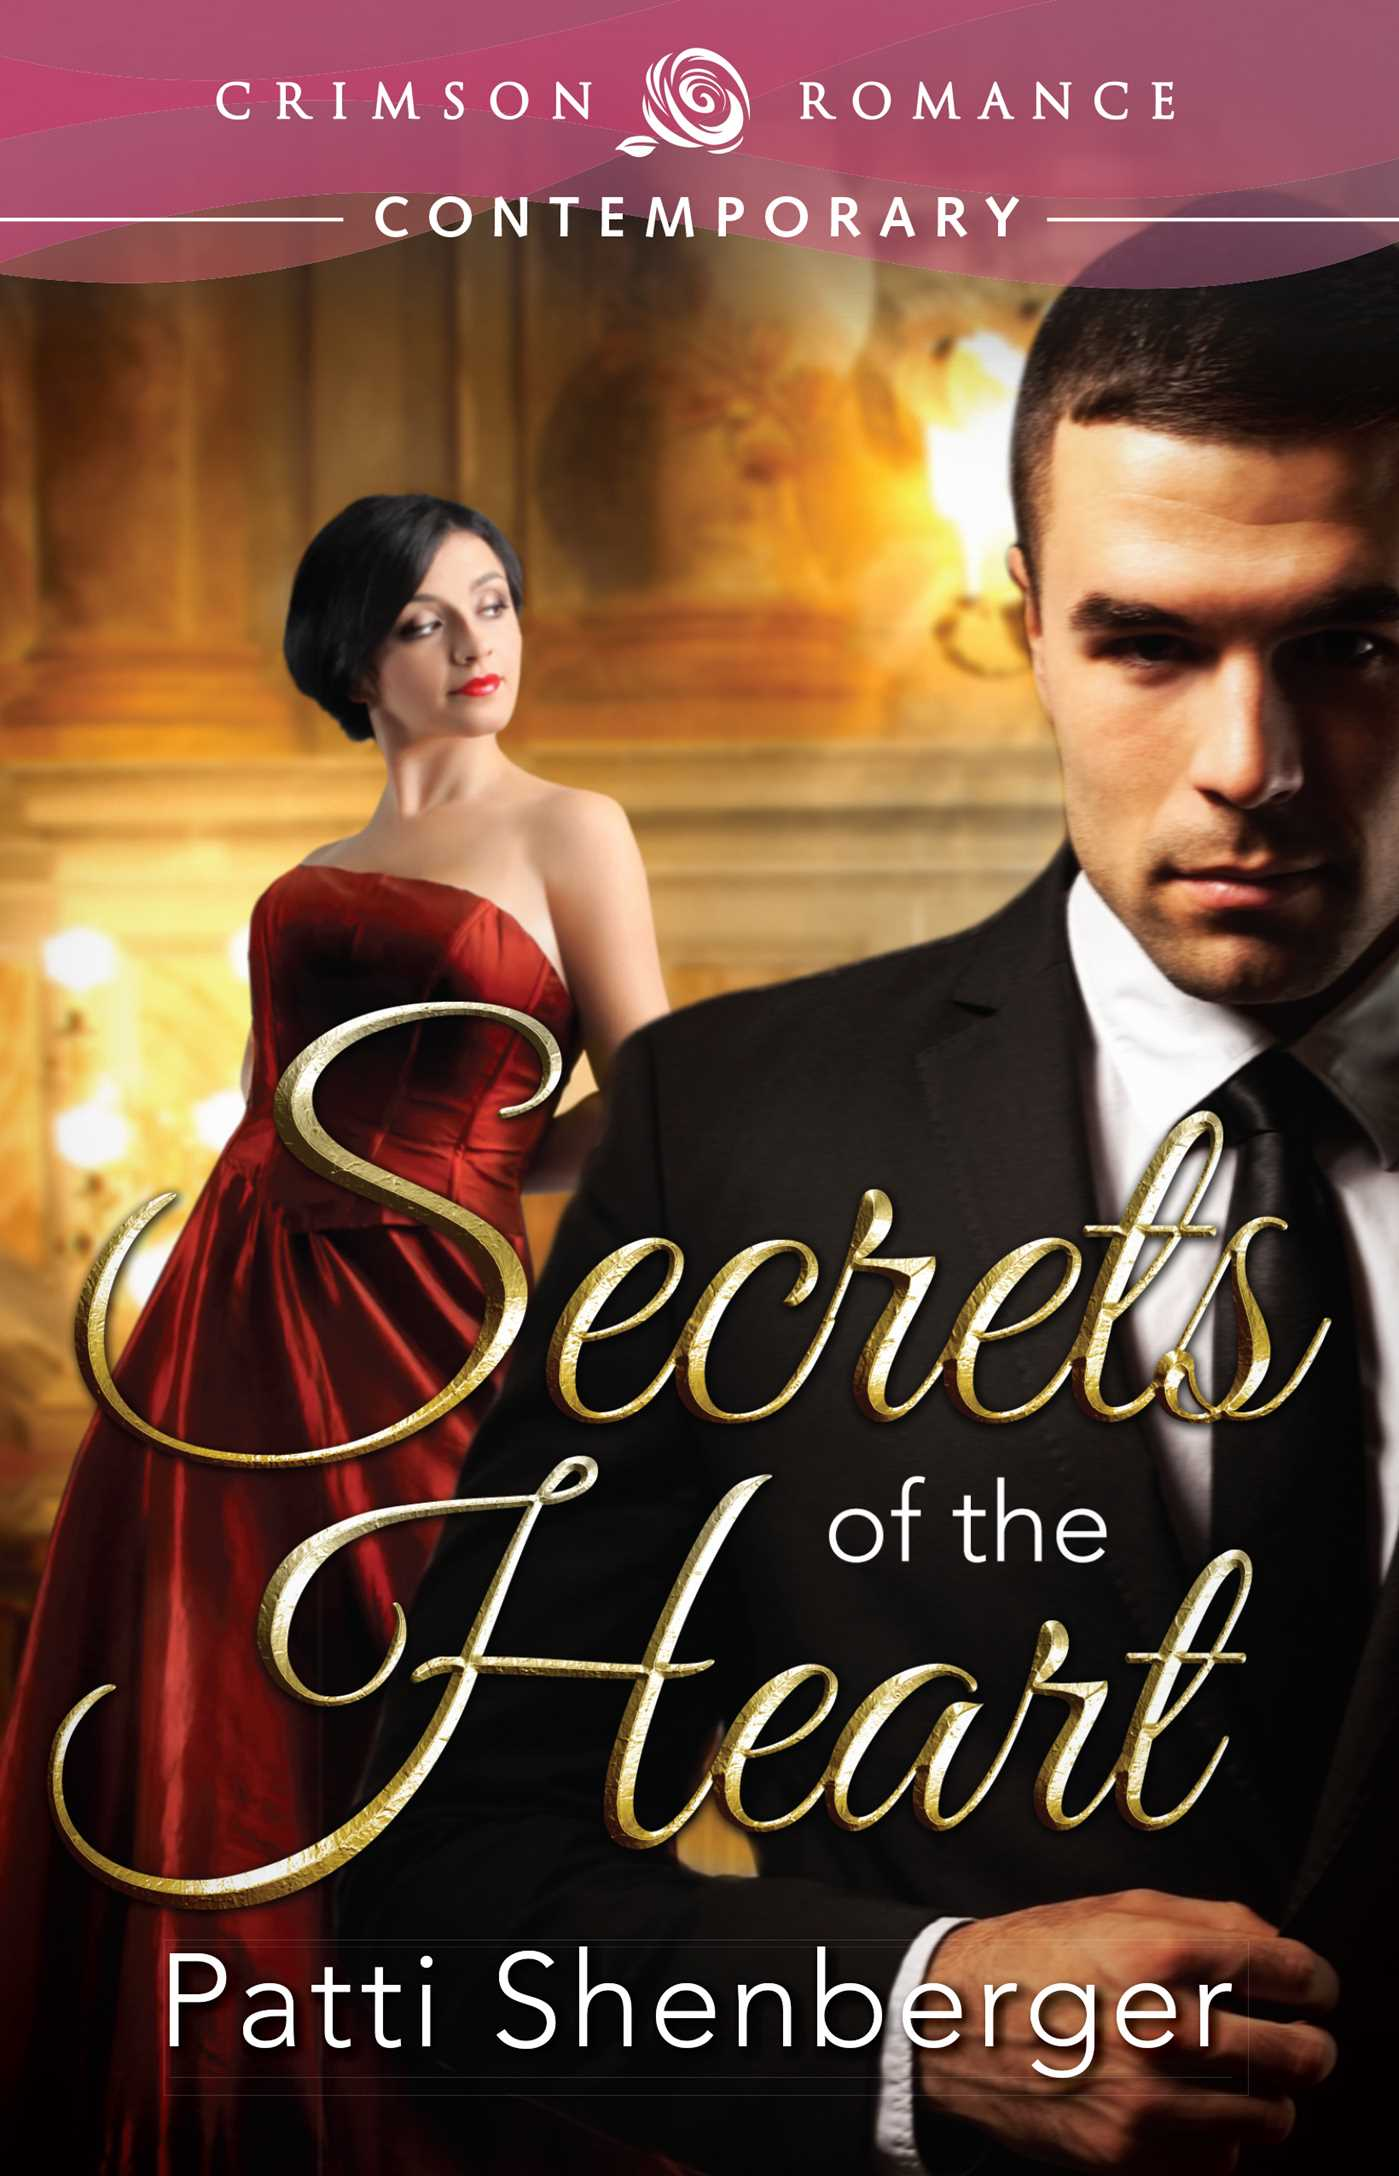 Secrets of the heart 9781440561429 hr